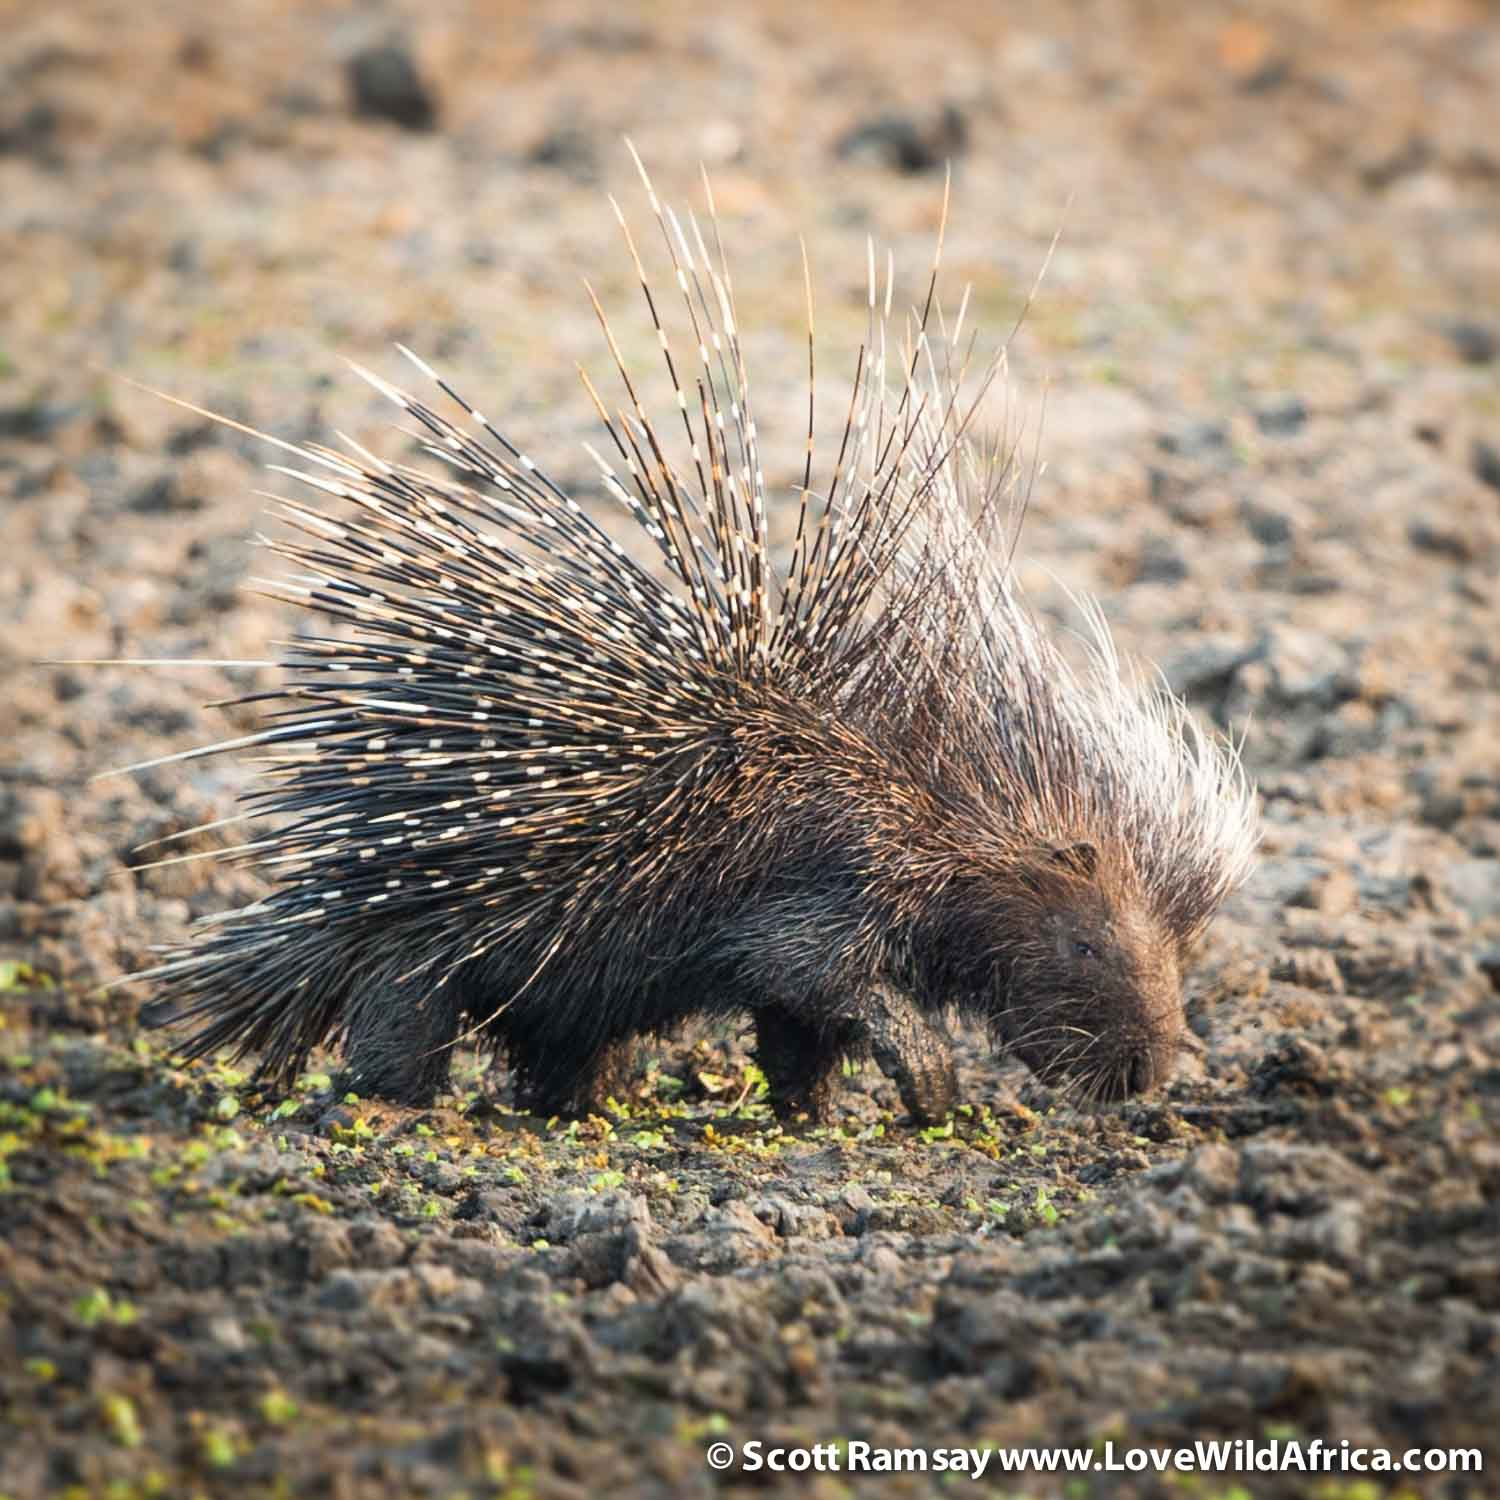 On one of the guided game drives in the late afternoon, we came across this porcupine near a waterpan. My first daylight sighting of one of these nocturnal creatures.